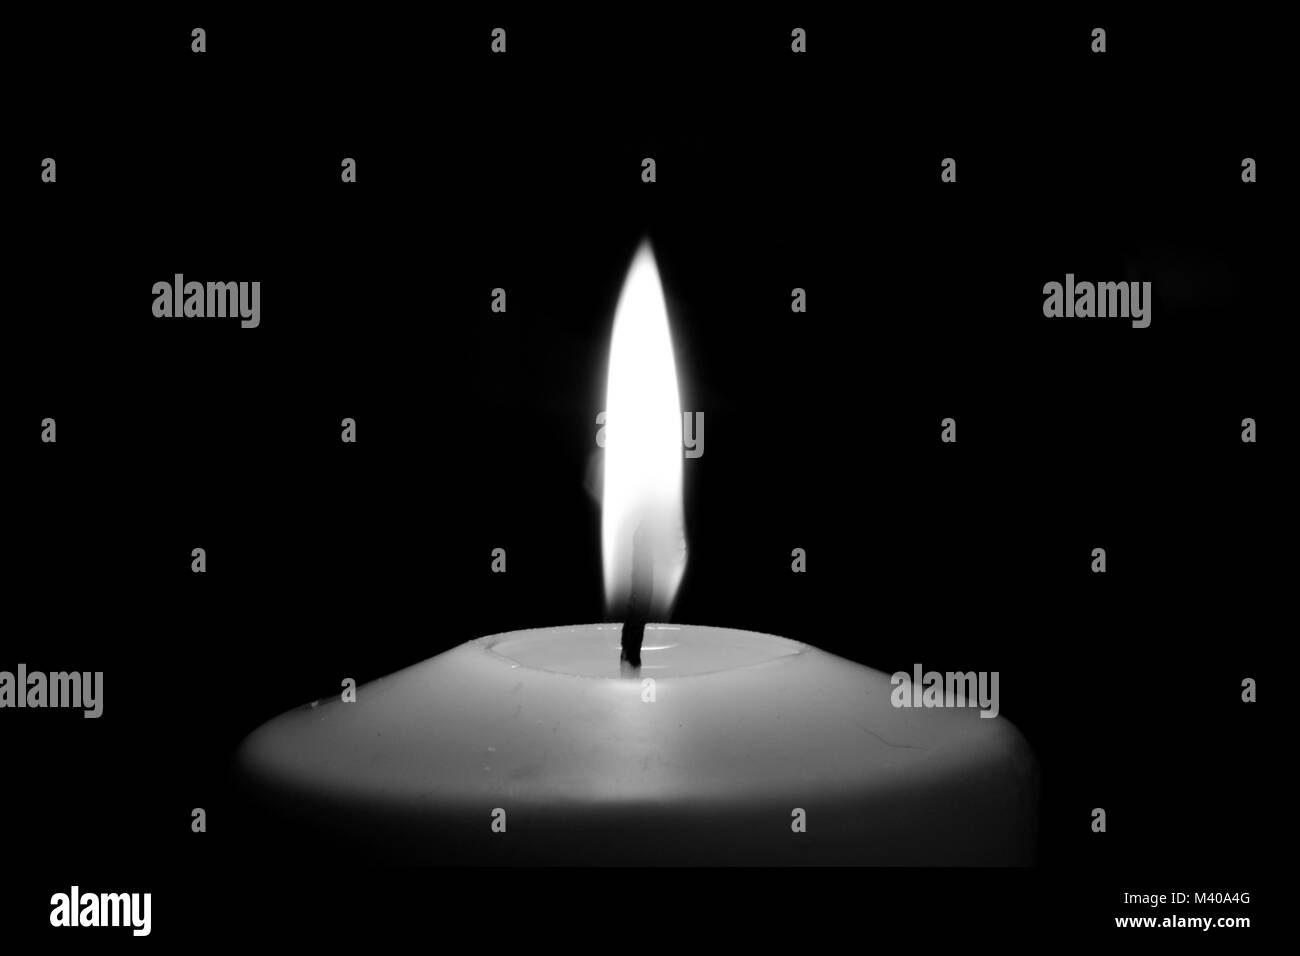 Candle Flame Isolated on Black - Stock Image